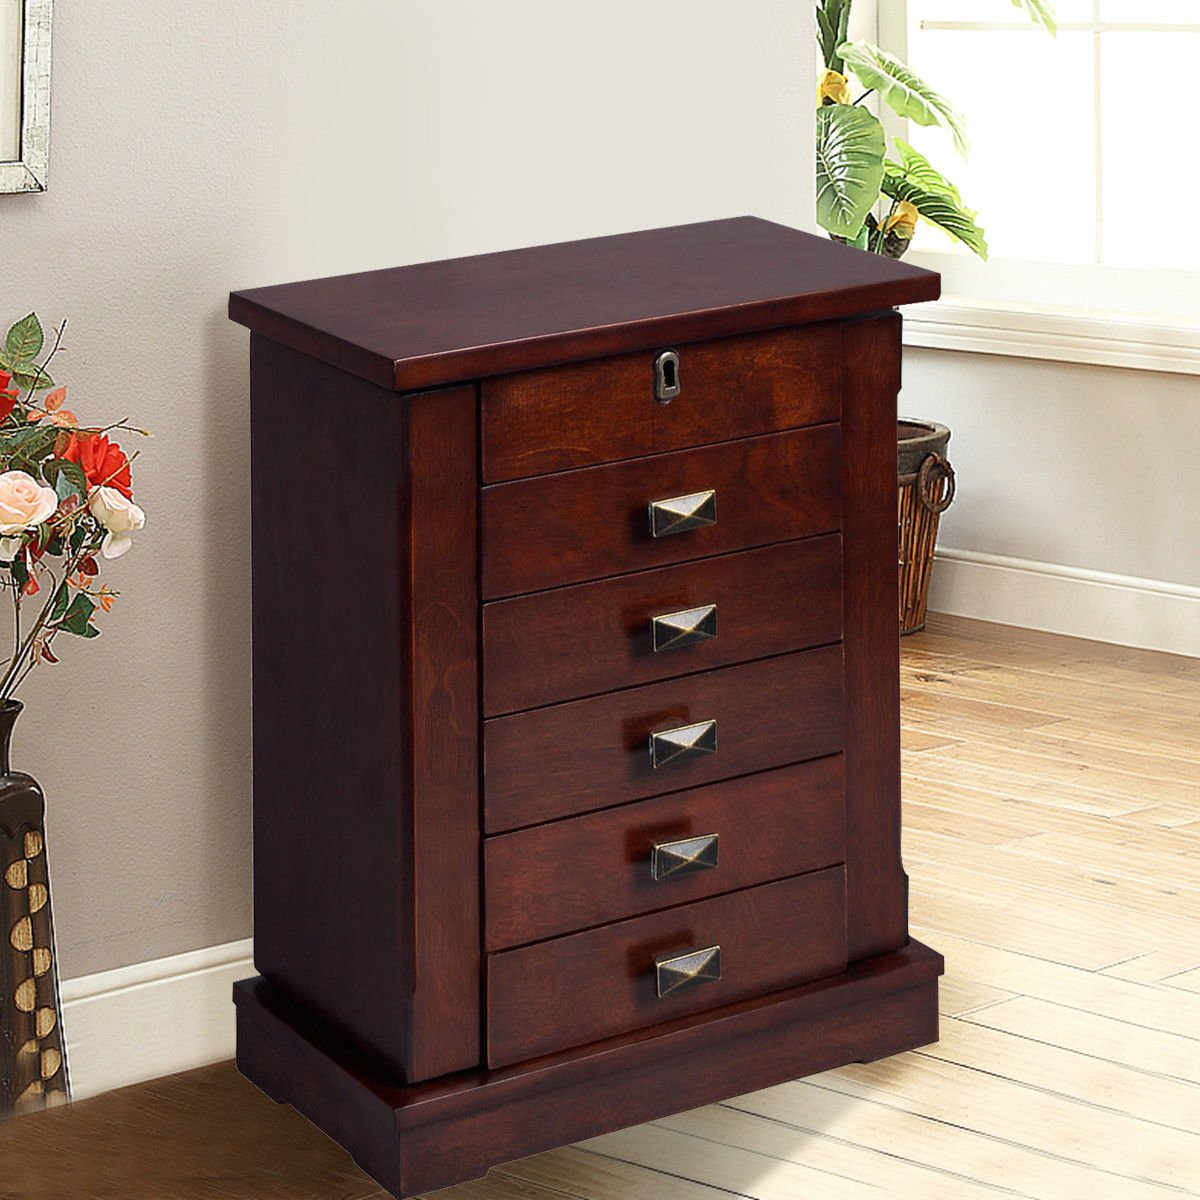 Adumly Armoire Jewelry Cabinet Box Storage Chest Stand Organizer Wood by Adumly (Image #9)